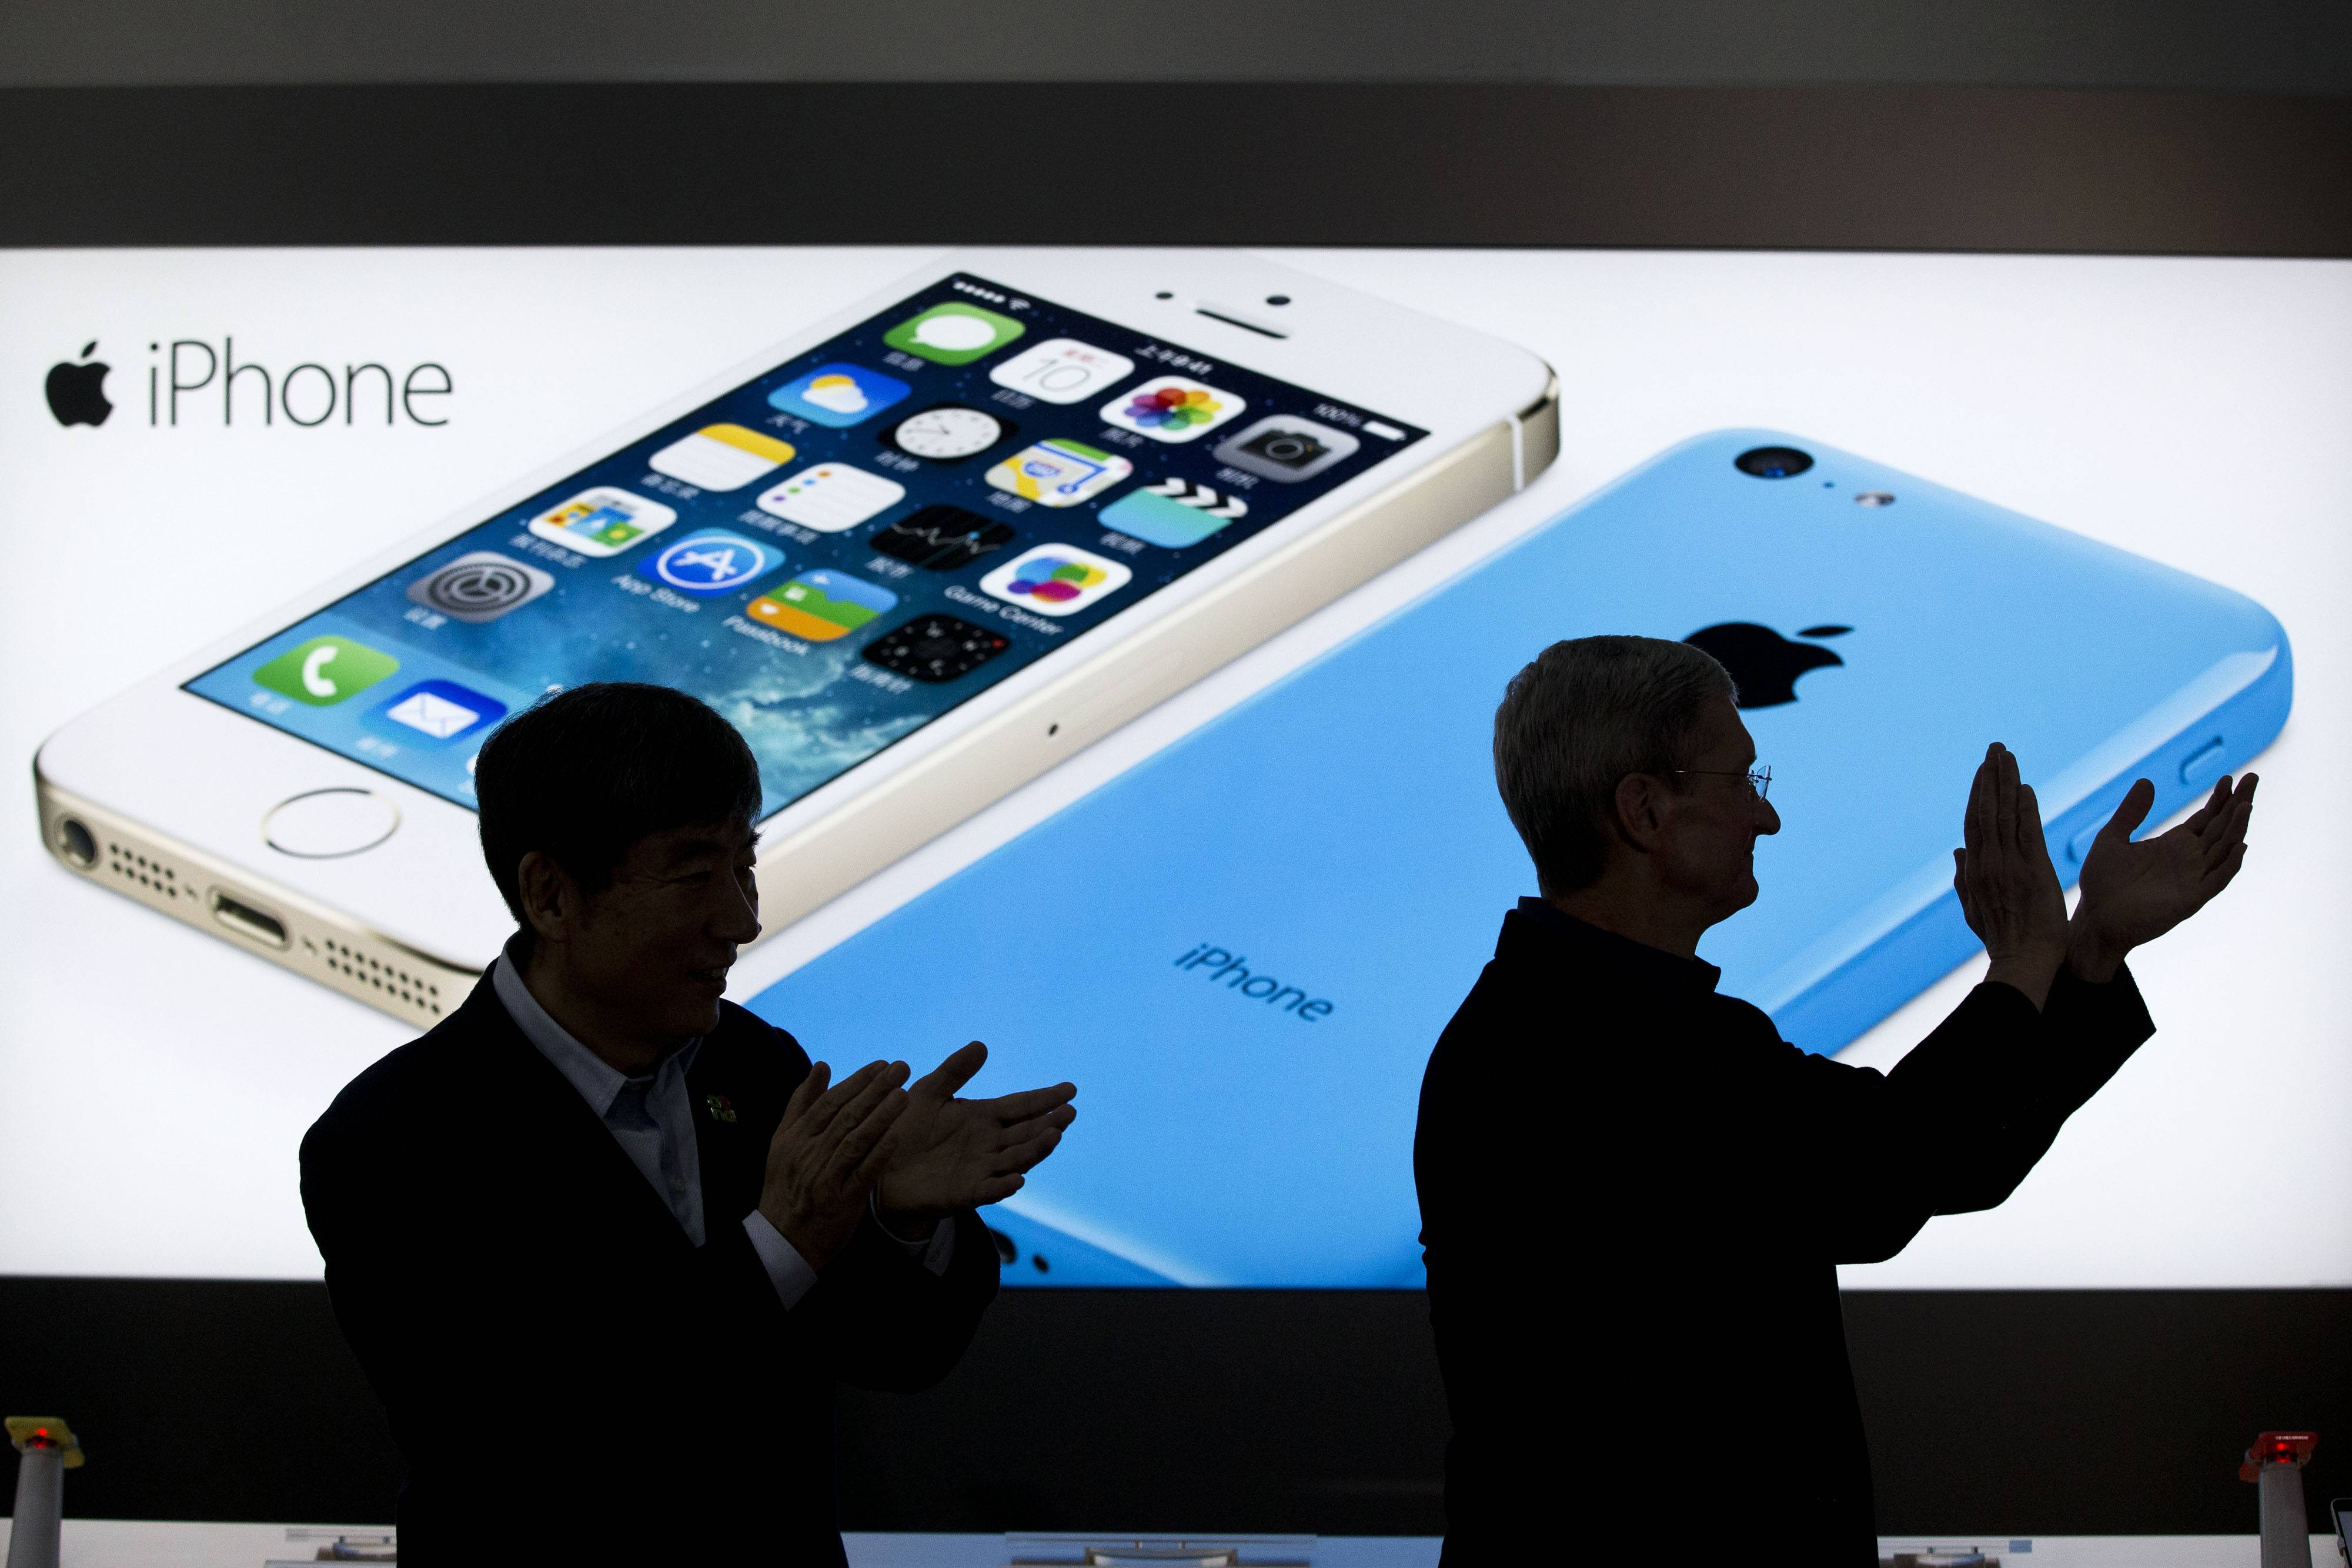 Apple CEO Tim Cook, right, and China Mobile's chairman Xi Guohua are silhouetted against a screen showing iPhone products as they applaud during a promotional event that marks the opening day of sales of China Mobile's 4G iPhone 5s and iPhone 5c at a shop of the world's largest mobile phone operator in Beijing, China. The high-stakes battle between the world's largest smartphone makers is scheduled to wrap up this week after a monthlong trial .